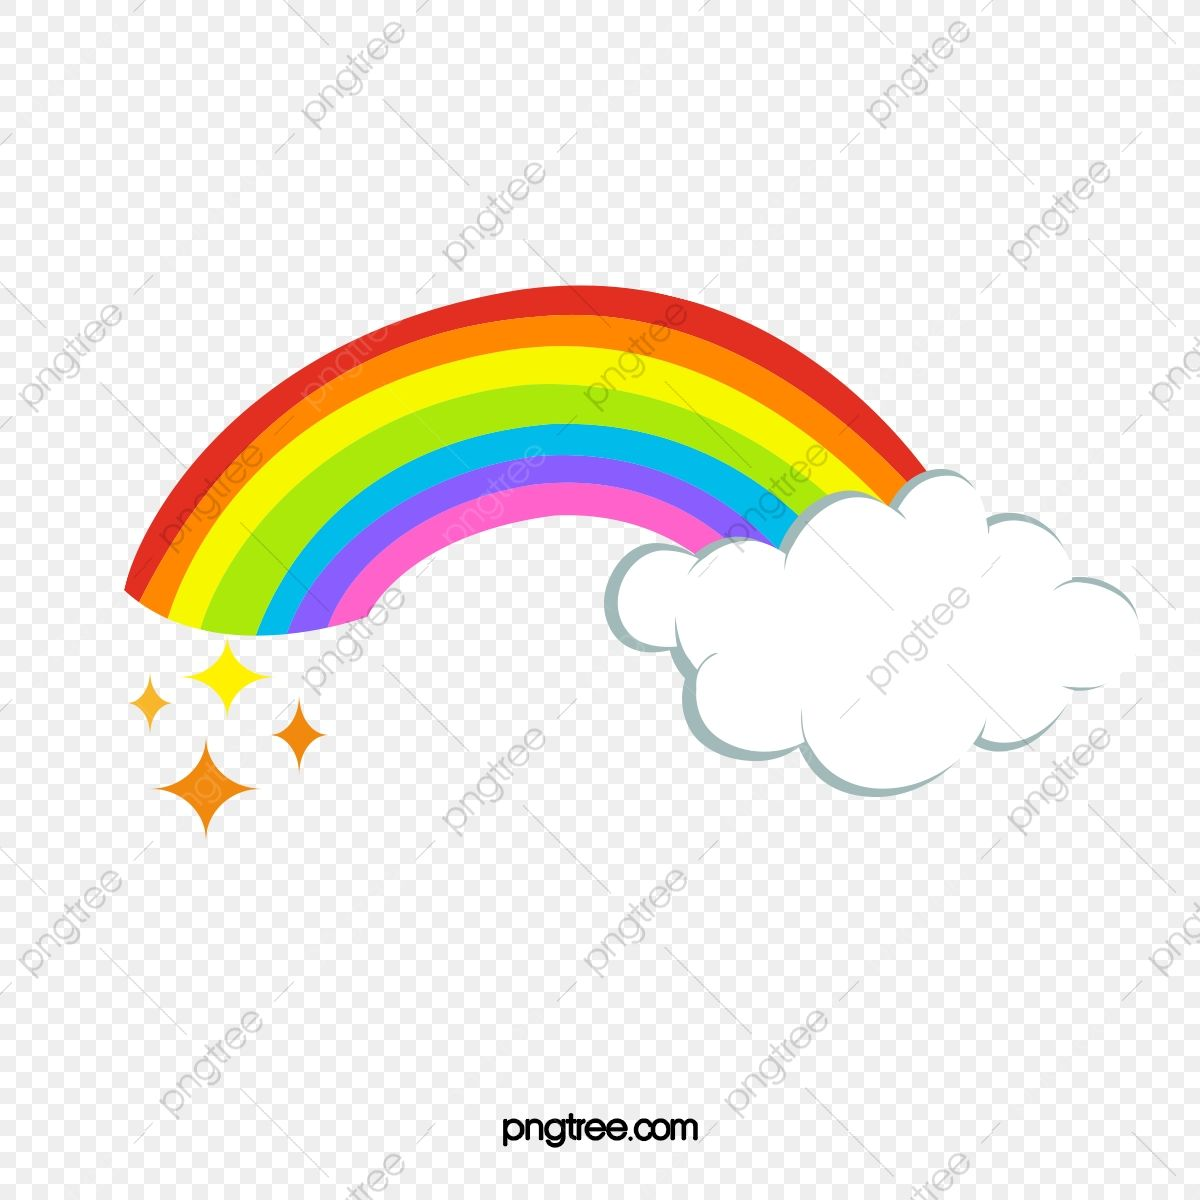 Cartoon Cute Clouds Rainbow Cute Clipart Ly Hand Painted Png Transparent Clipart Image And Psd File For Free Download Rainbow Cartoon Rainbow Drawing Cartoon Clip Art